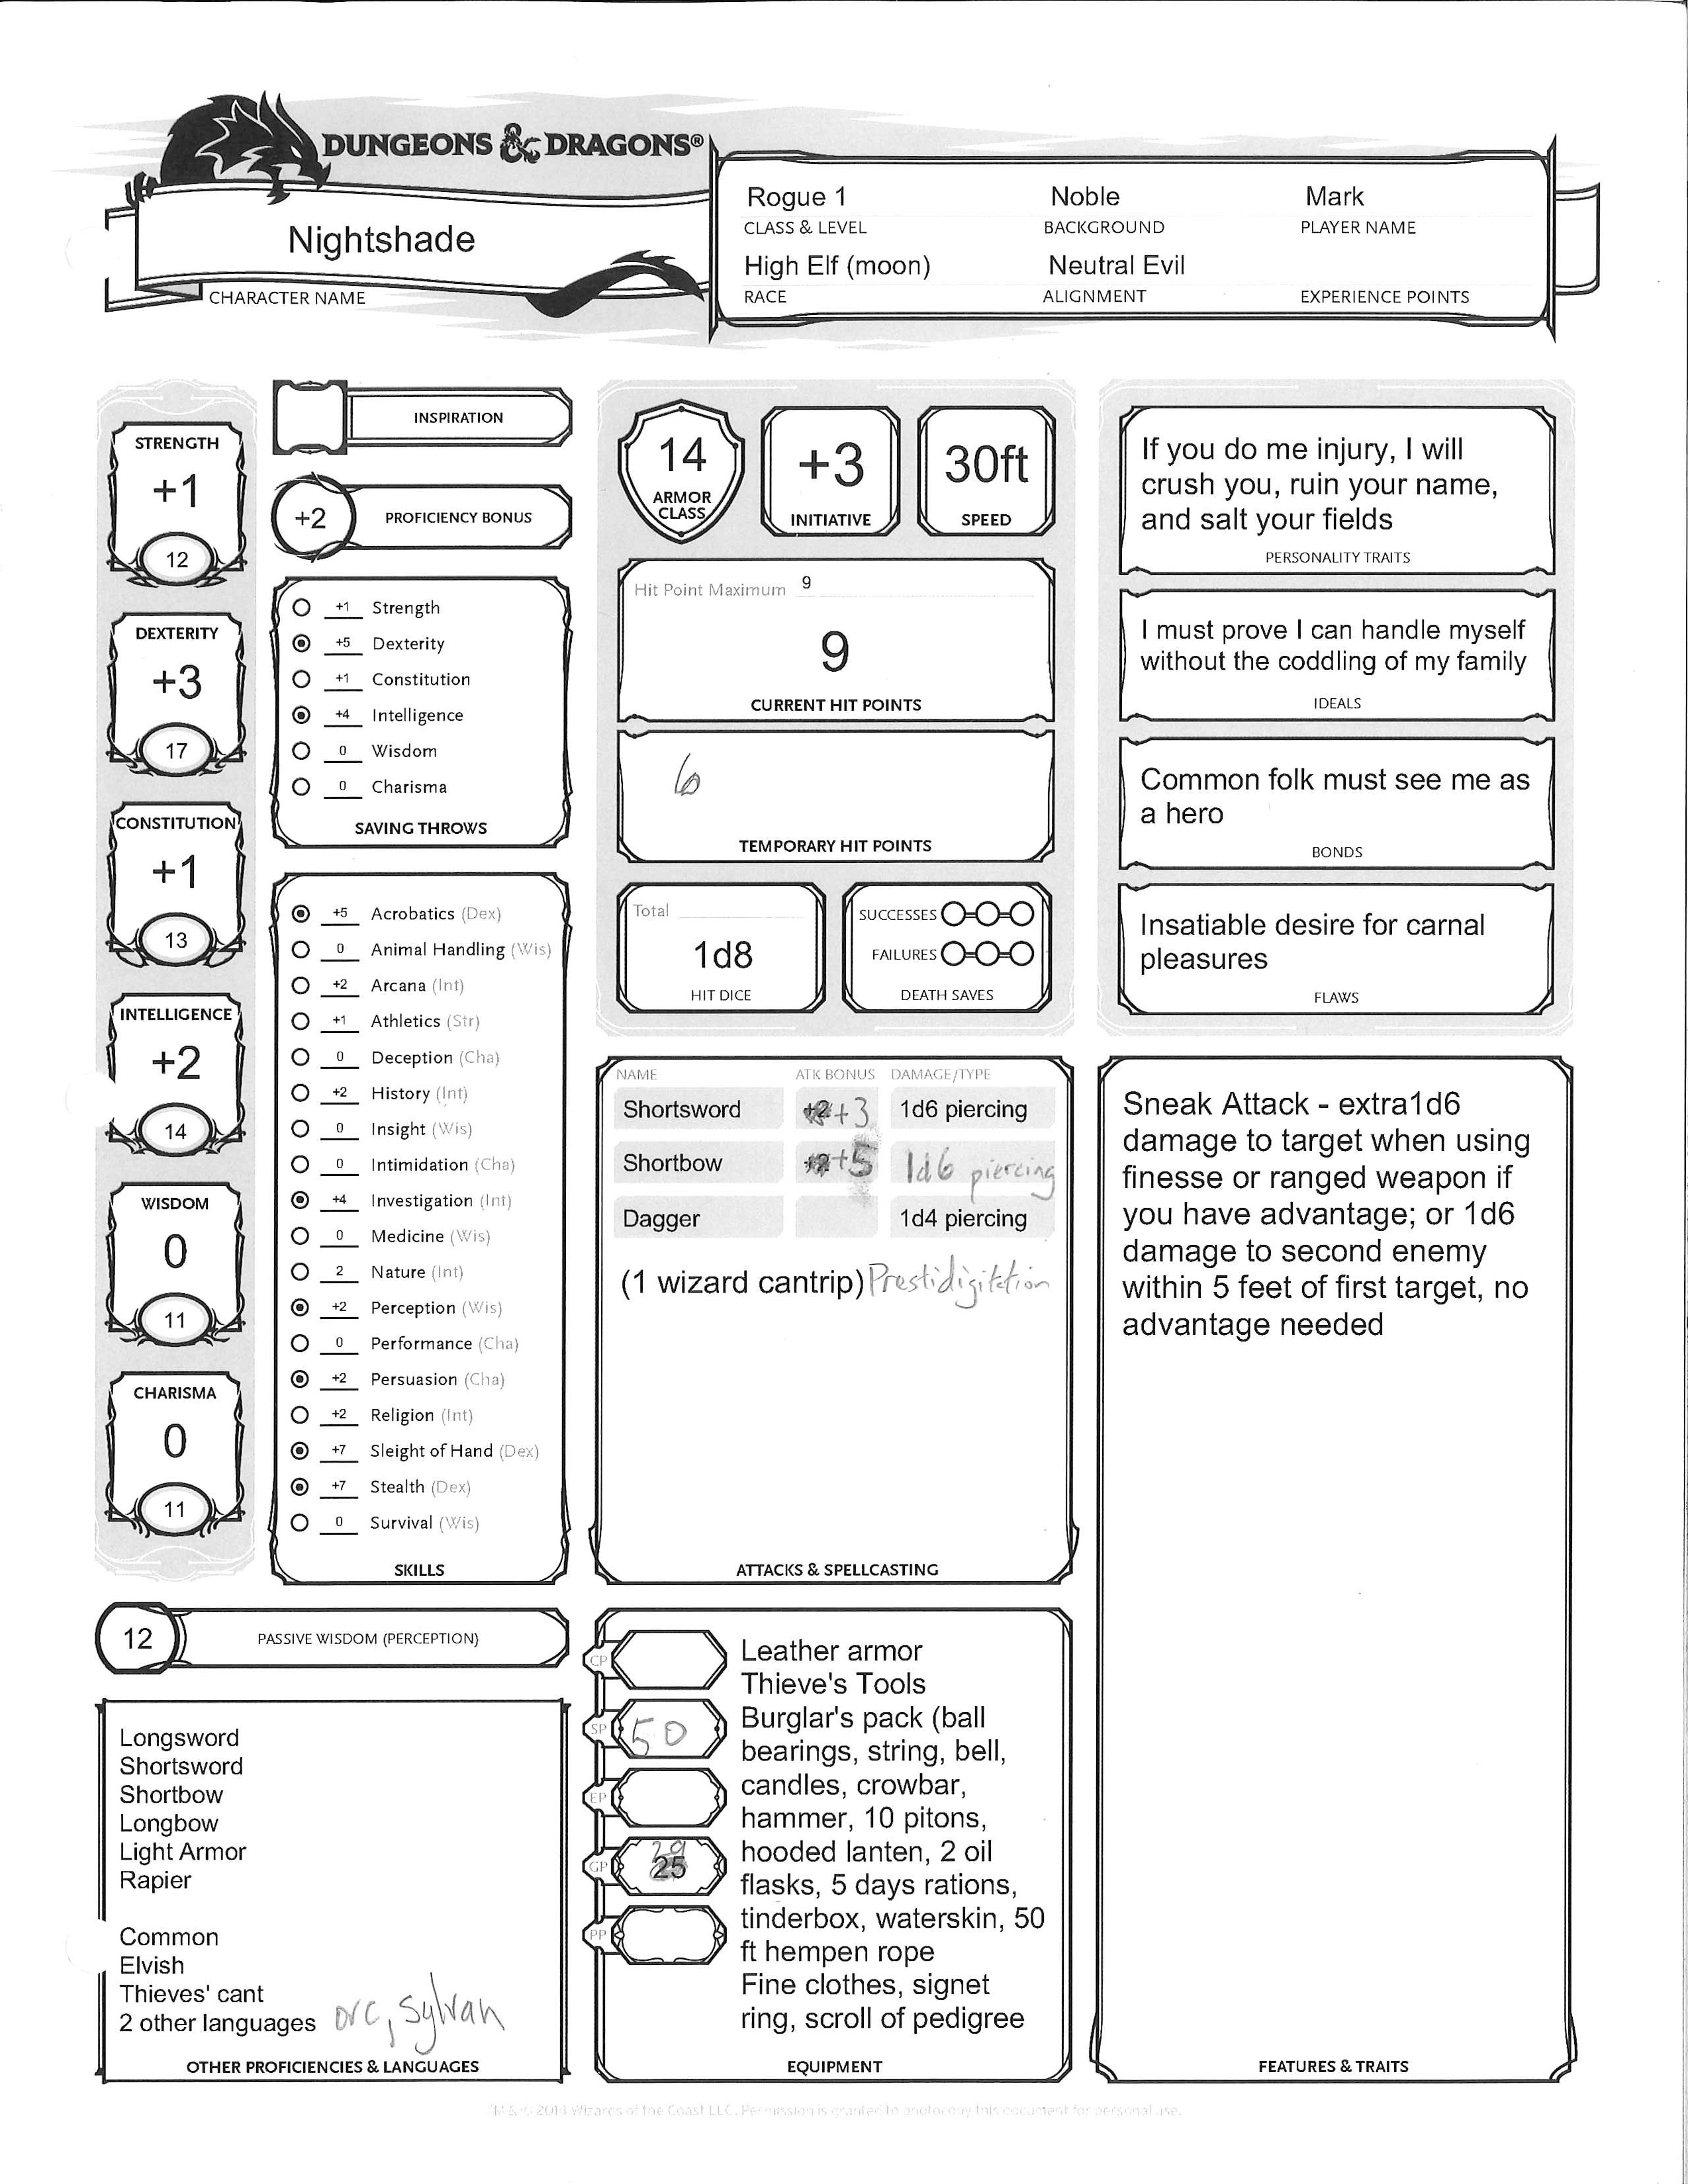 Nightshade_Character_Sheet_Scanned_-_1-page-0.jpg